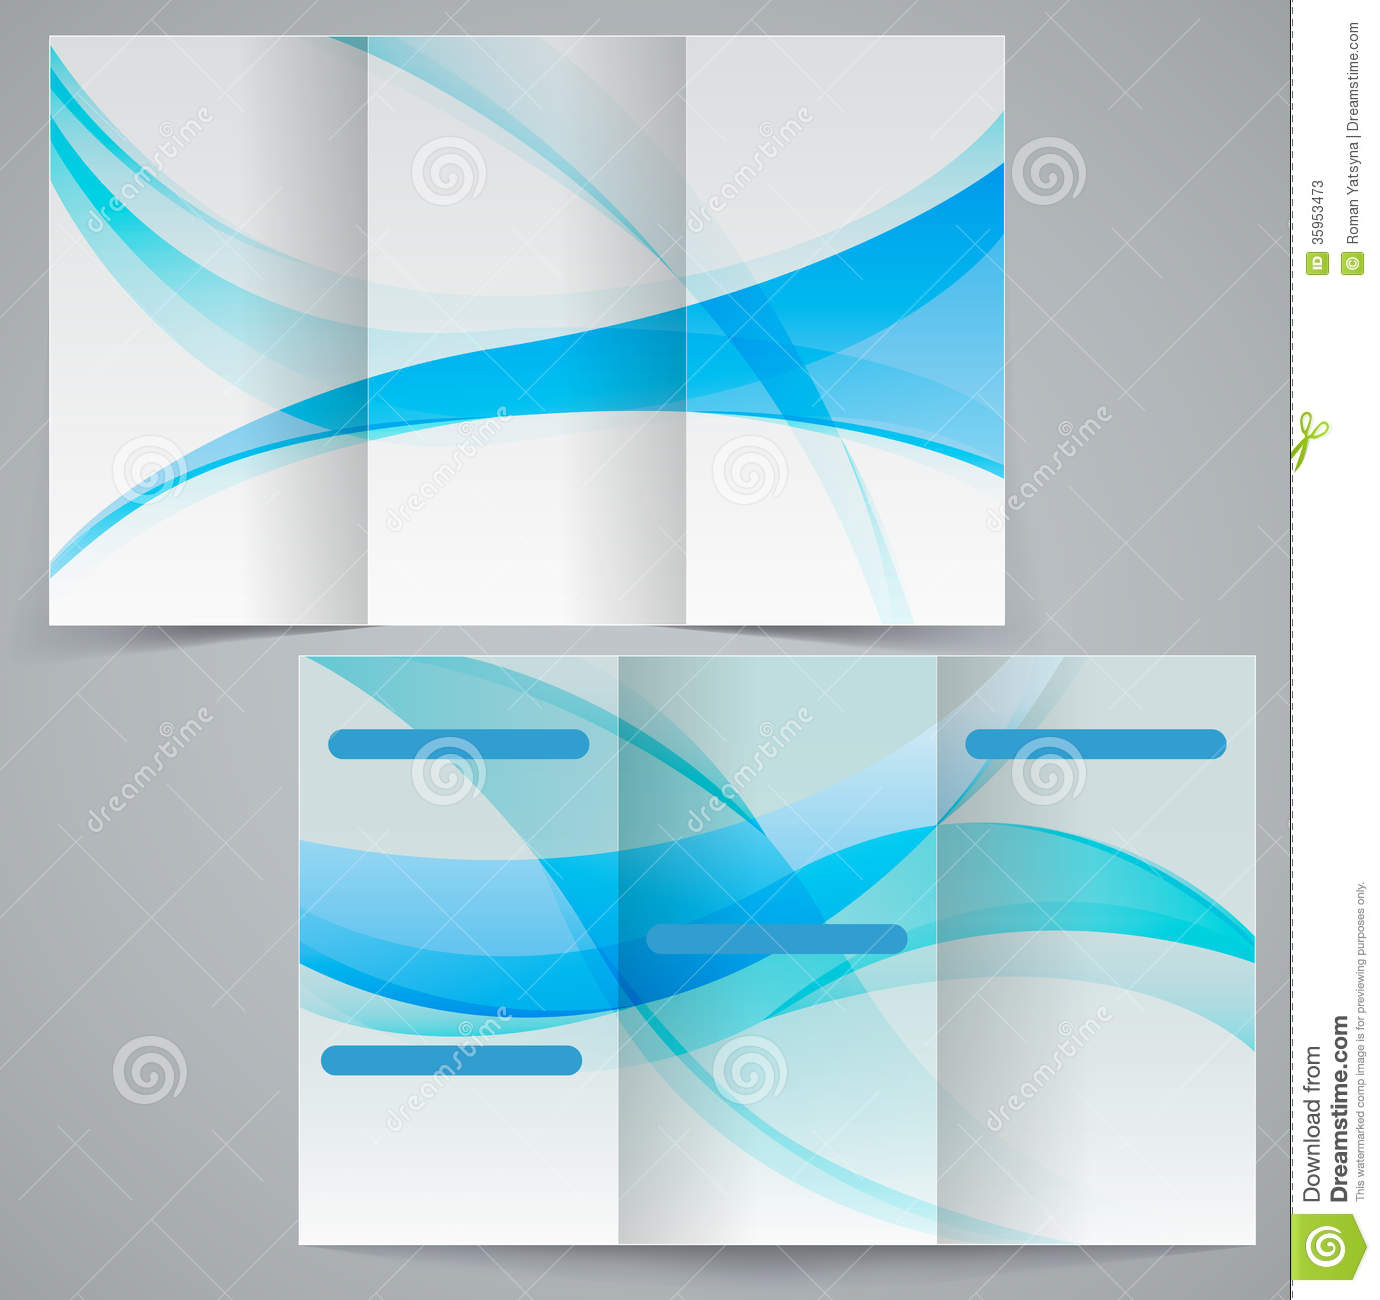 Tri fold business brochure template vector blue d stock for Template for brochure free